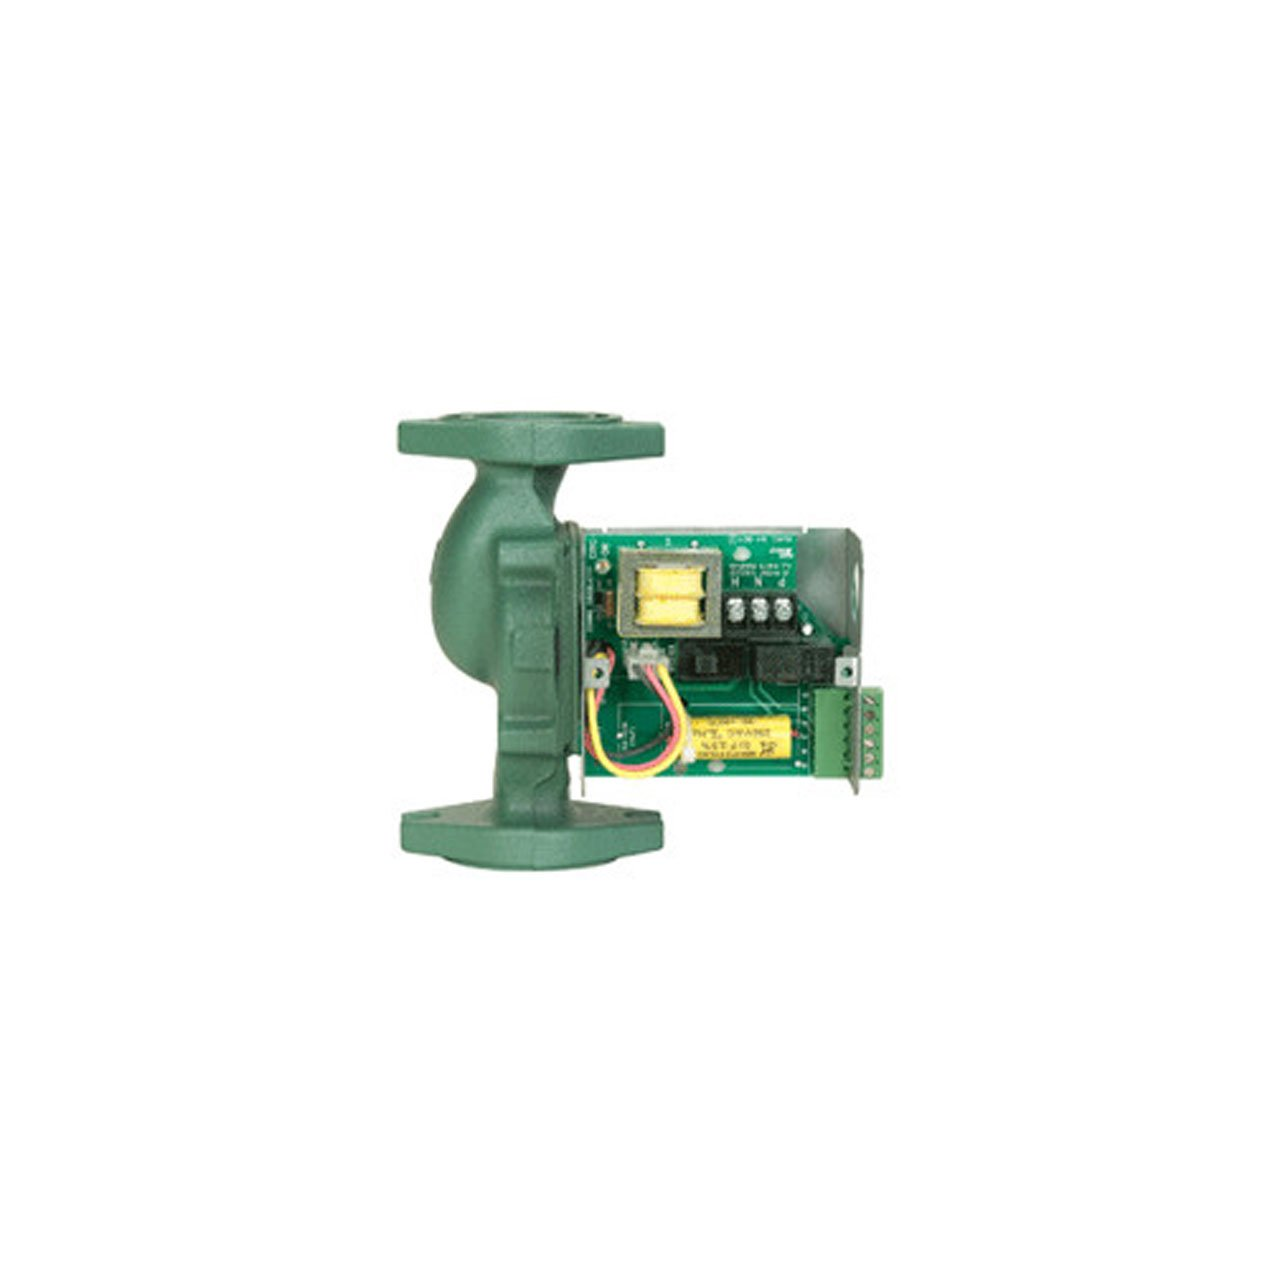 taco 007 zf5 9 cast iron priority zoning circulator rotated taco 007 zf5 9 cast iron priority zoning circulator rotated flange tools amazon com